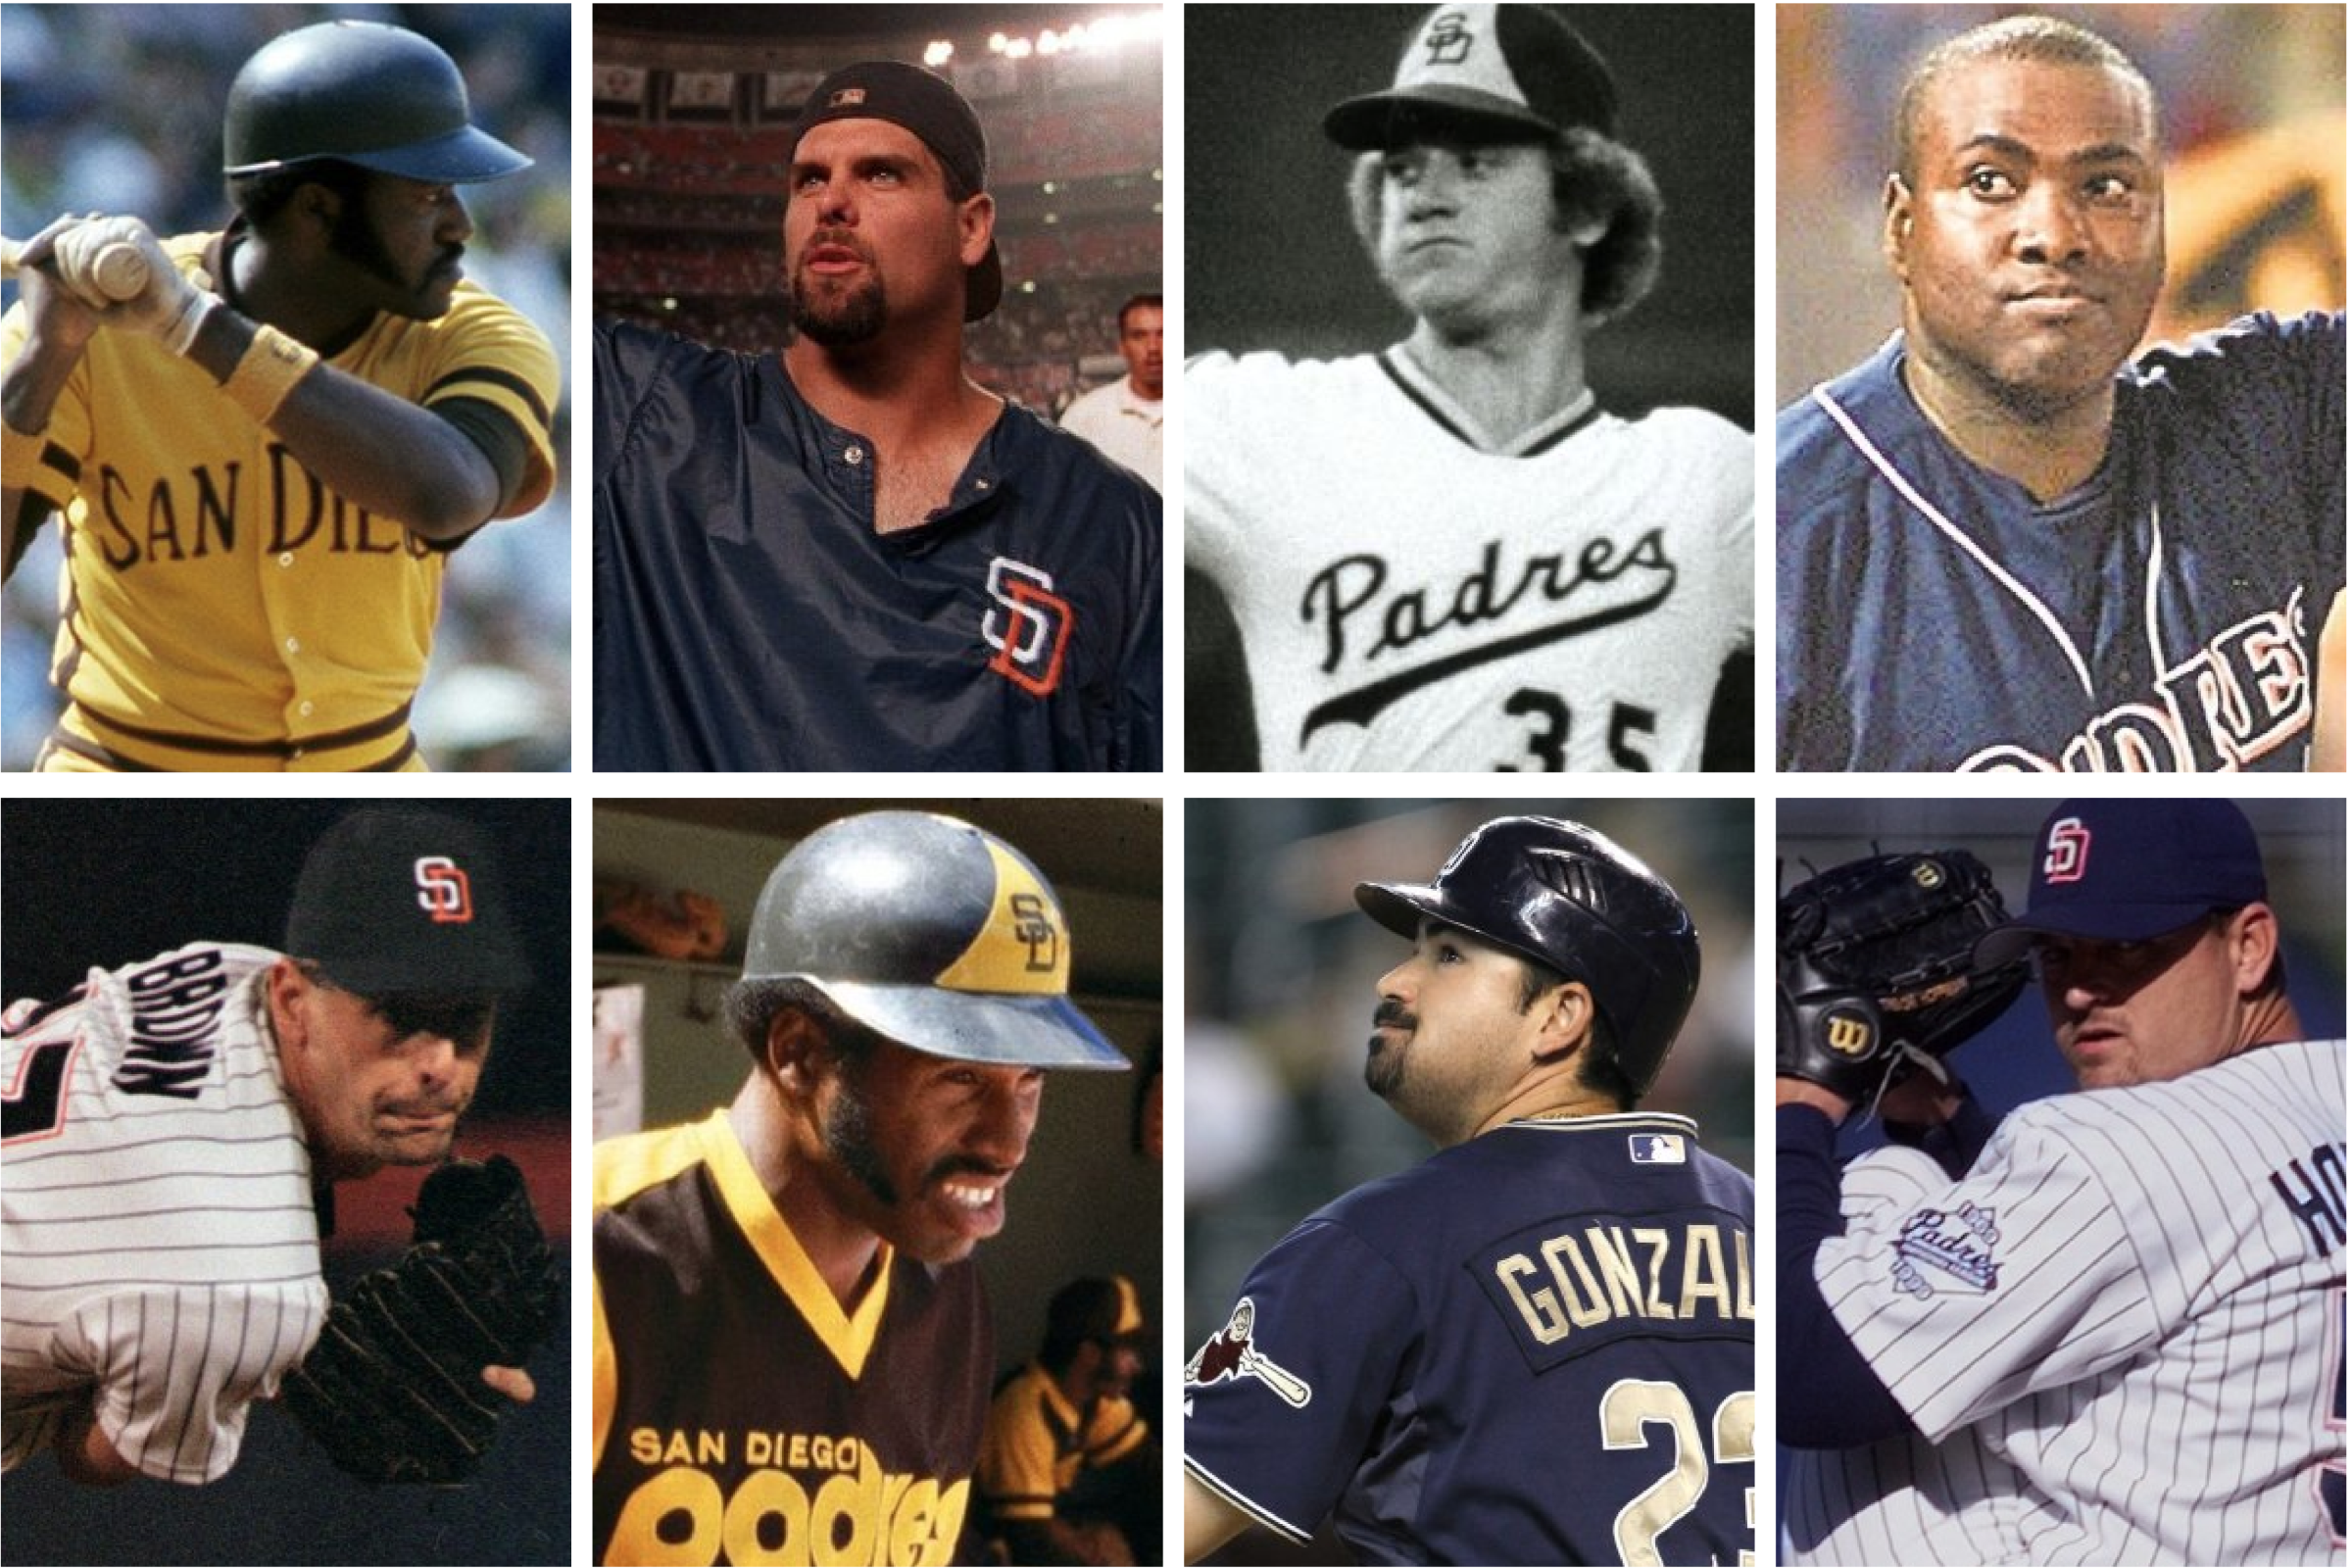 top-padres-on-field-01.png